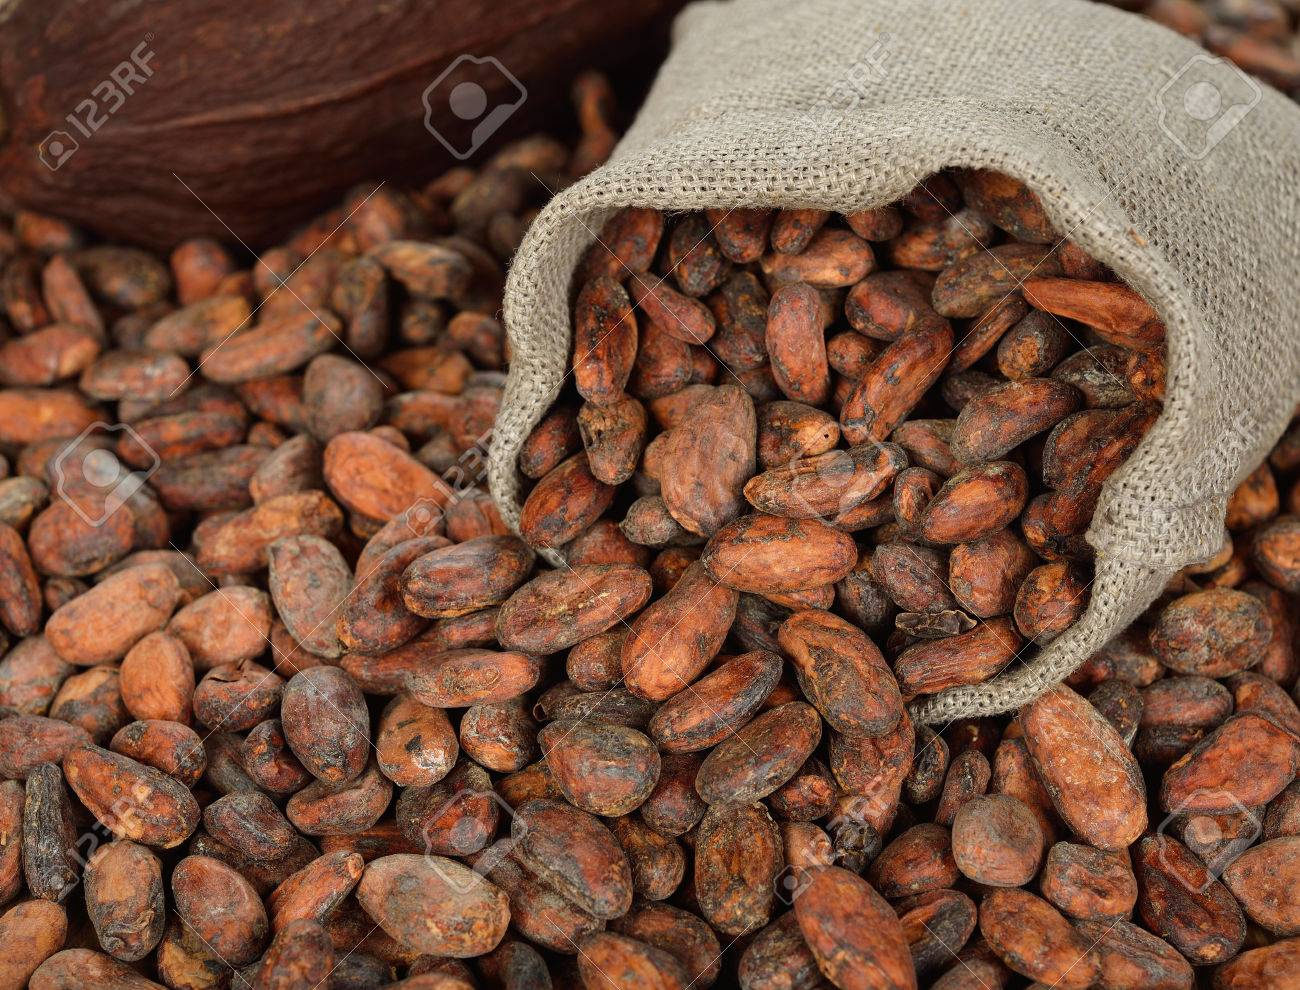 Cocoa beans in a bag on a brown background - 30047459